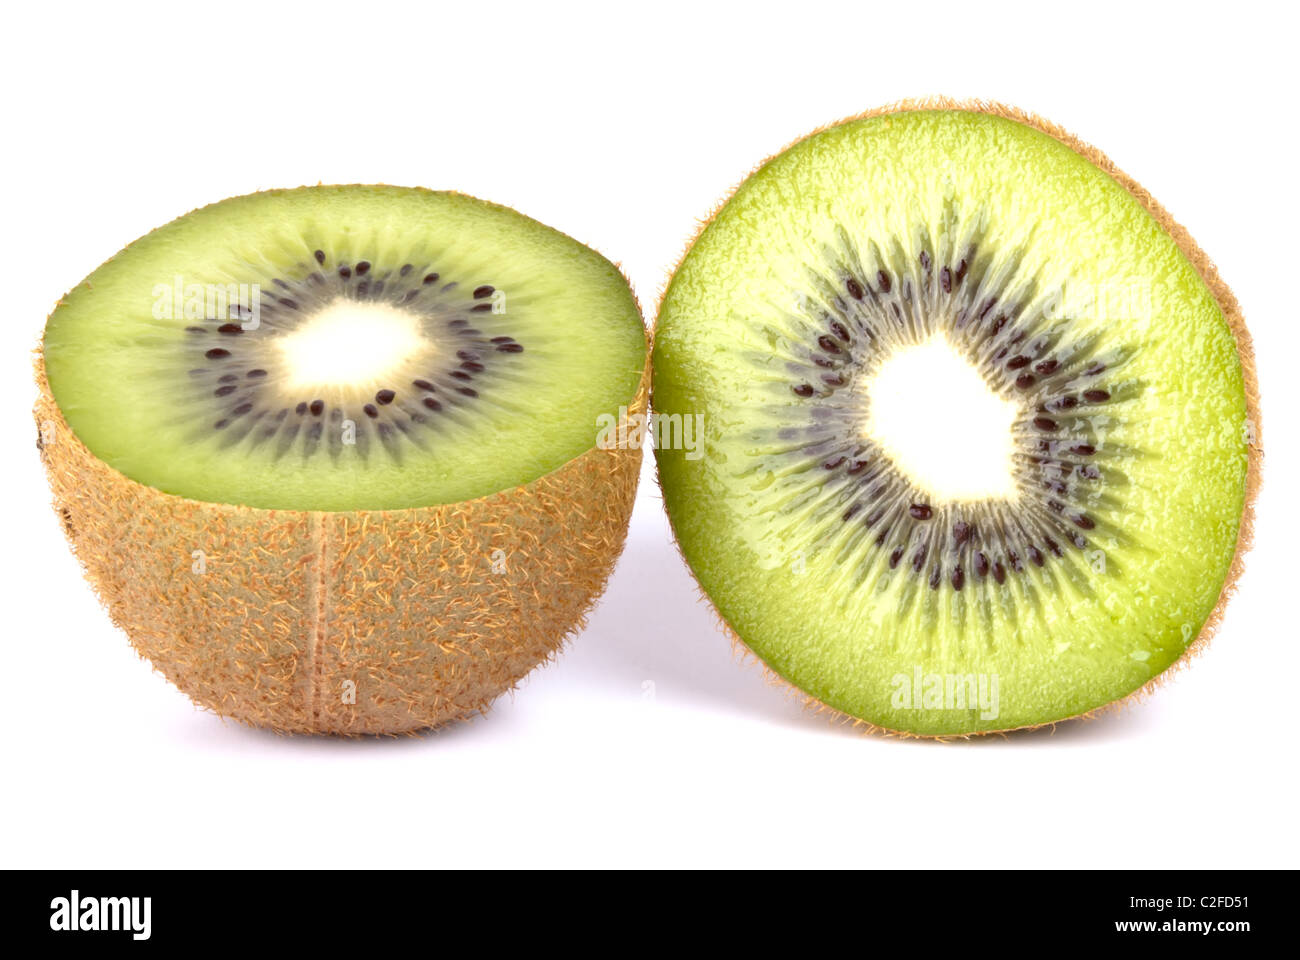 Kiwi two halves exempted from white background - Stock Image